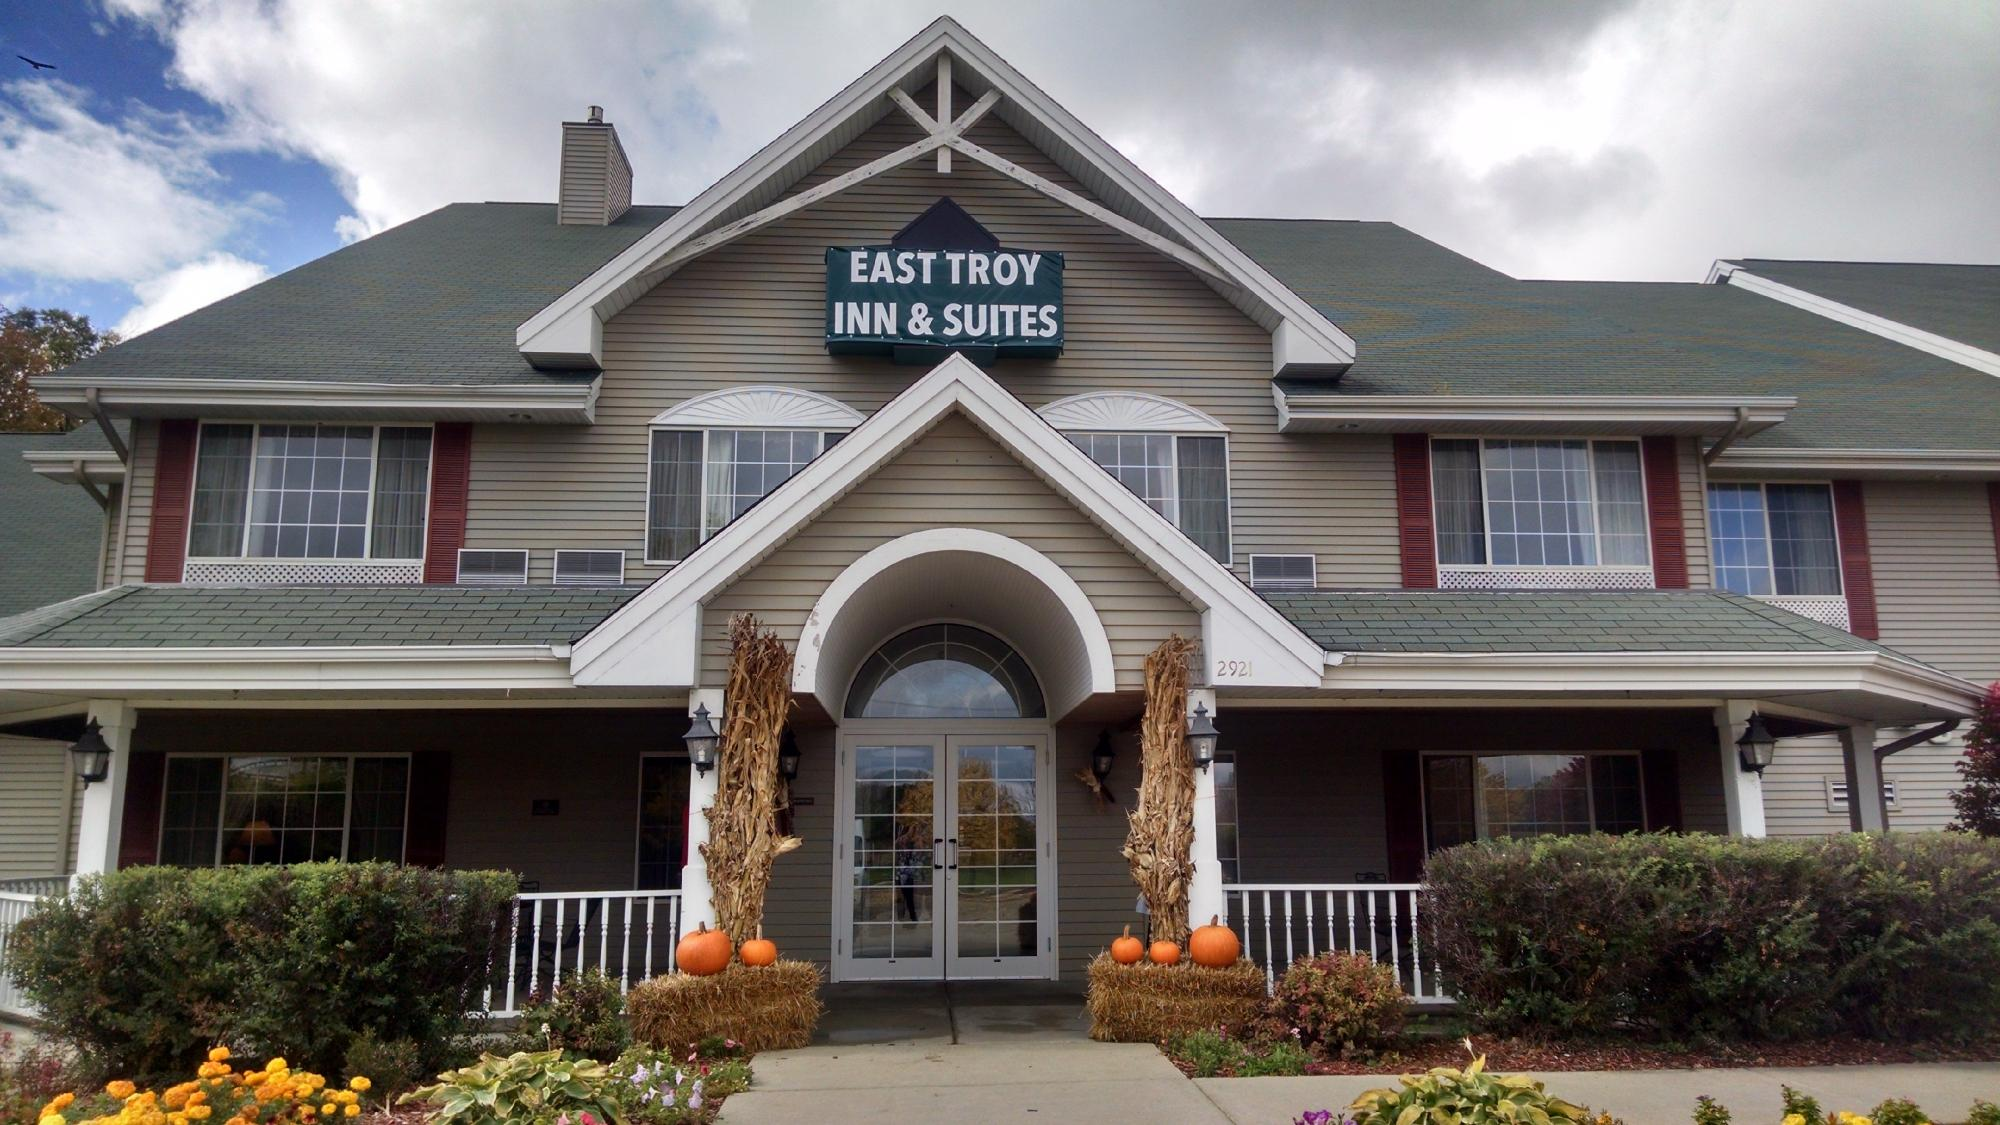 East Troy Inn & Suites